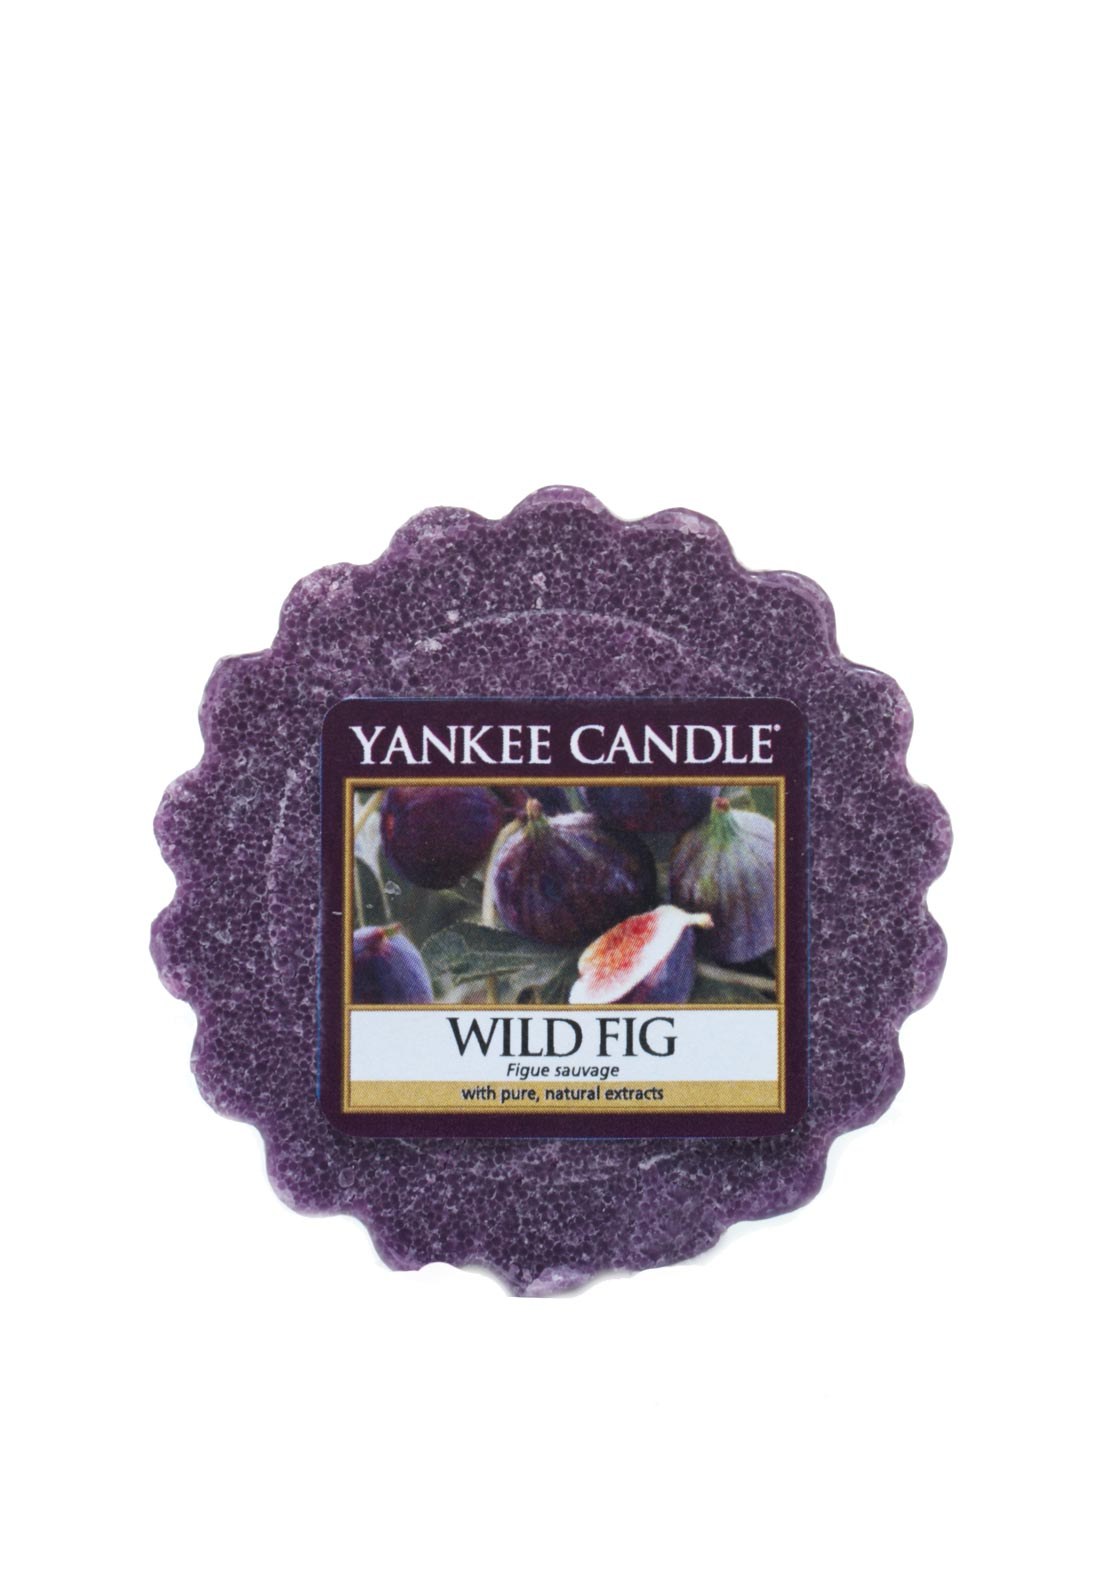 Yankee Candle Wax Tart, Wild Fig